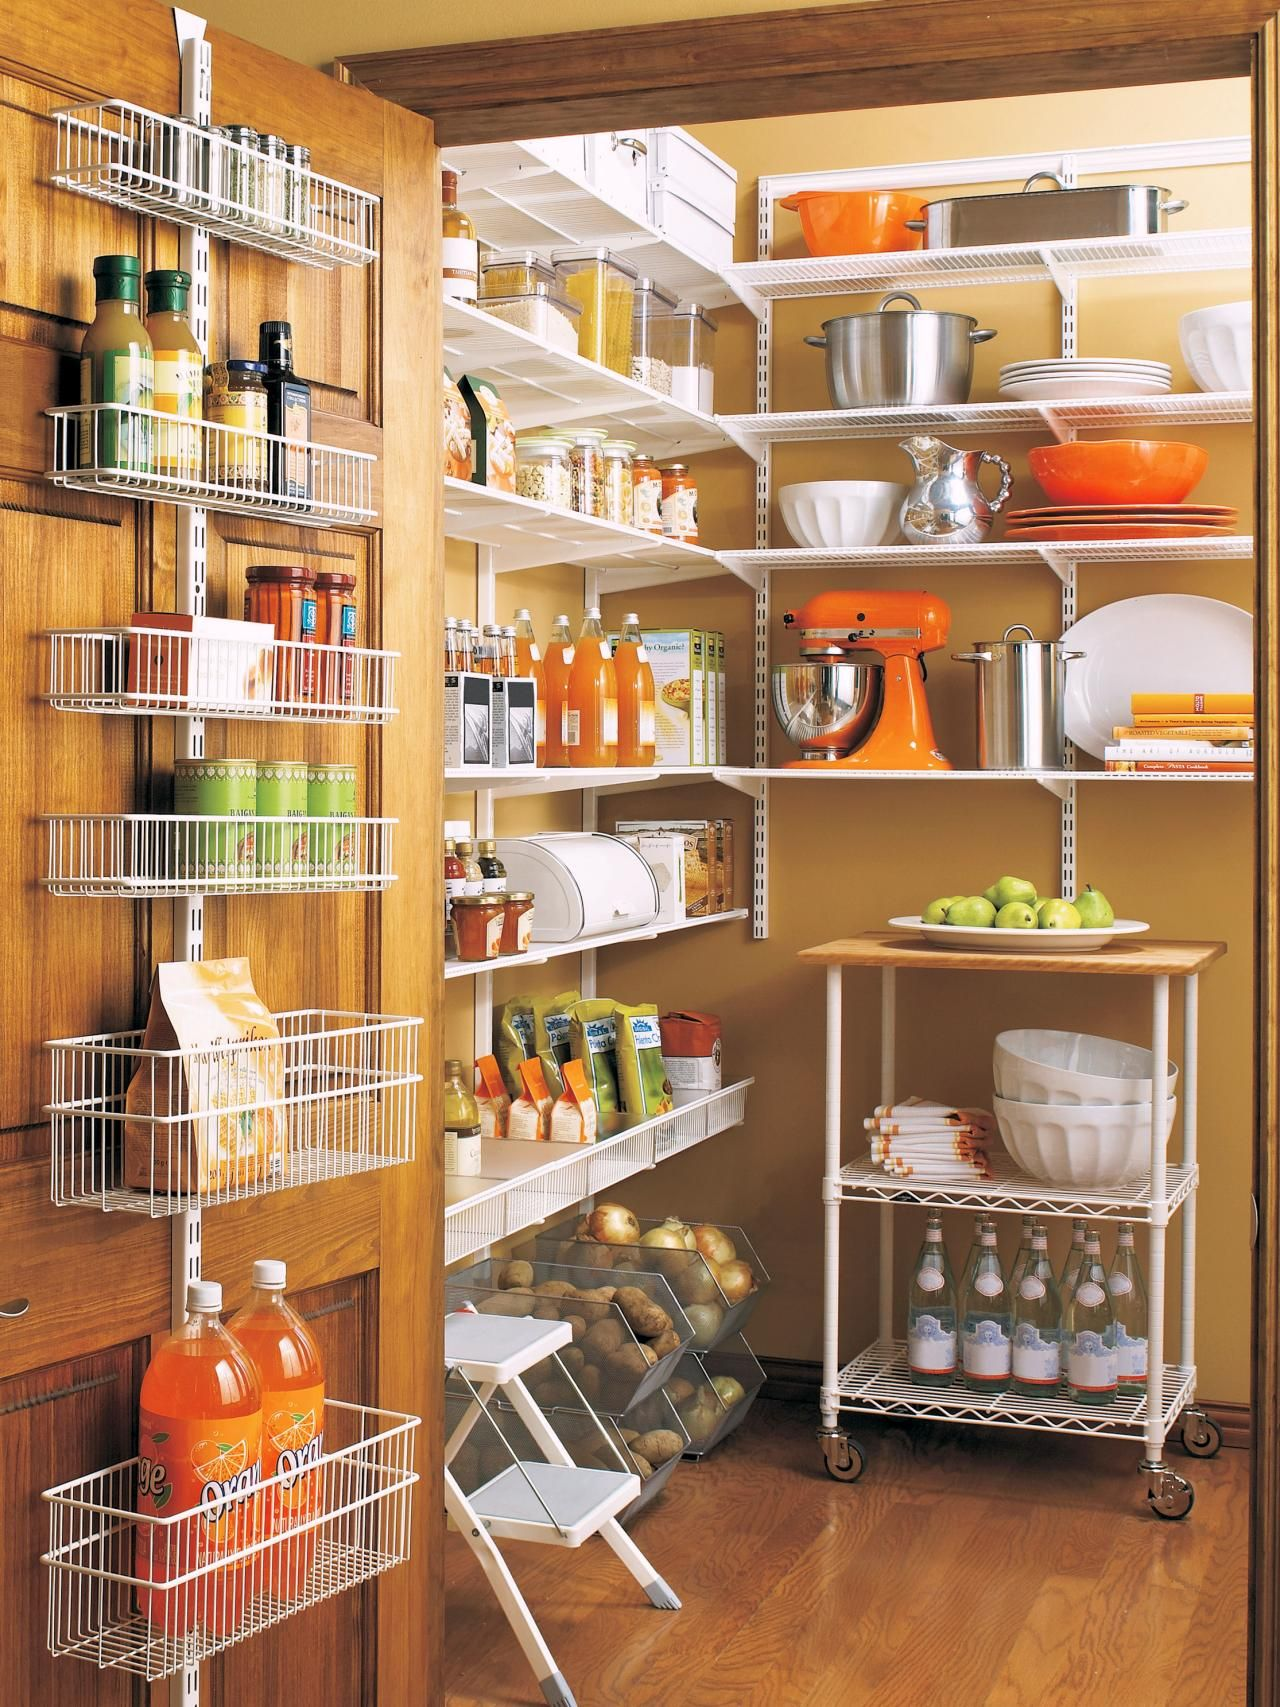 Pictures Of Kitchen Pantry Options And Ideas For Efficient Storage |  Kitchen Designs   Choose Kitchen Layouts U0026 Remodeling Materials | HGTV